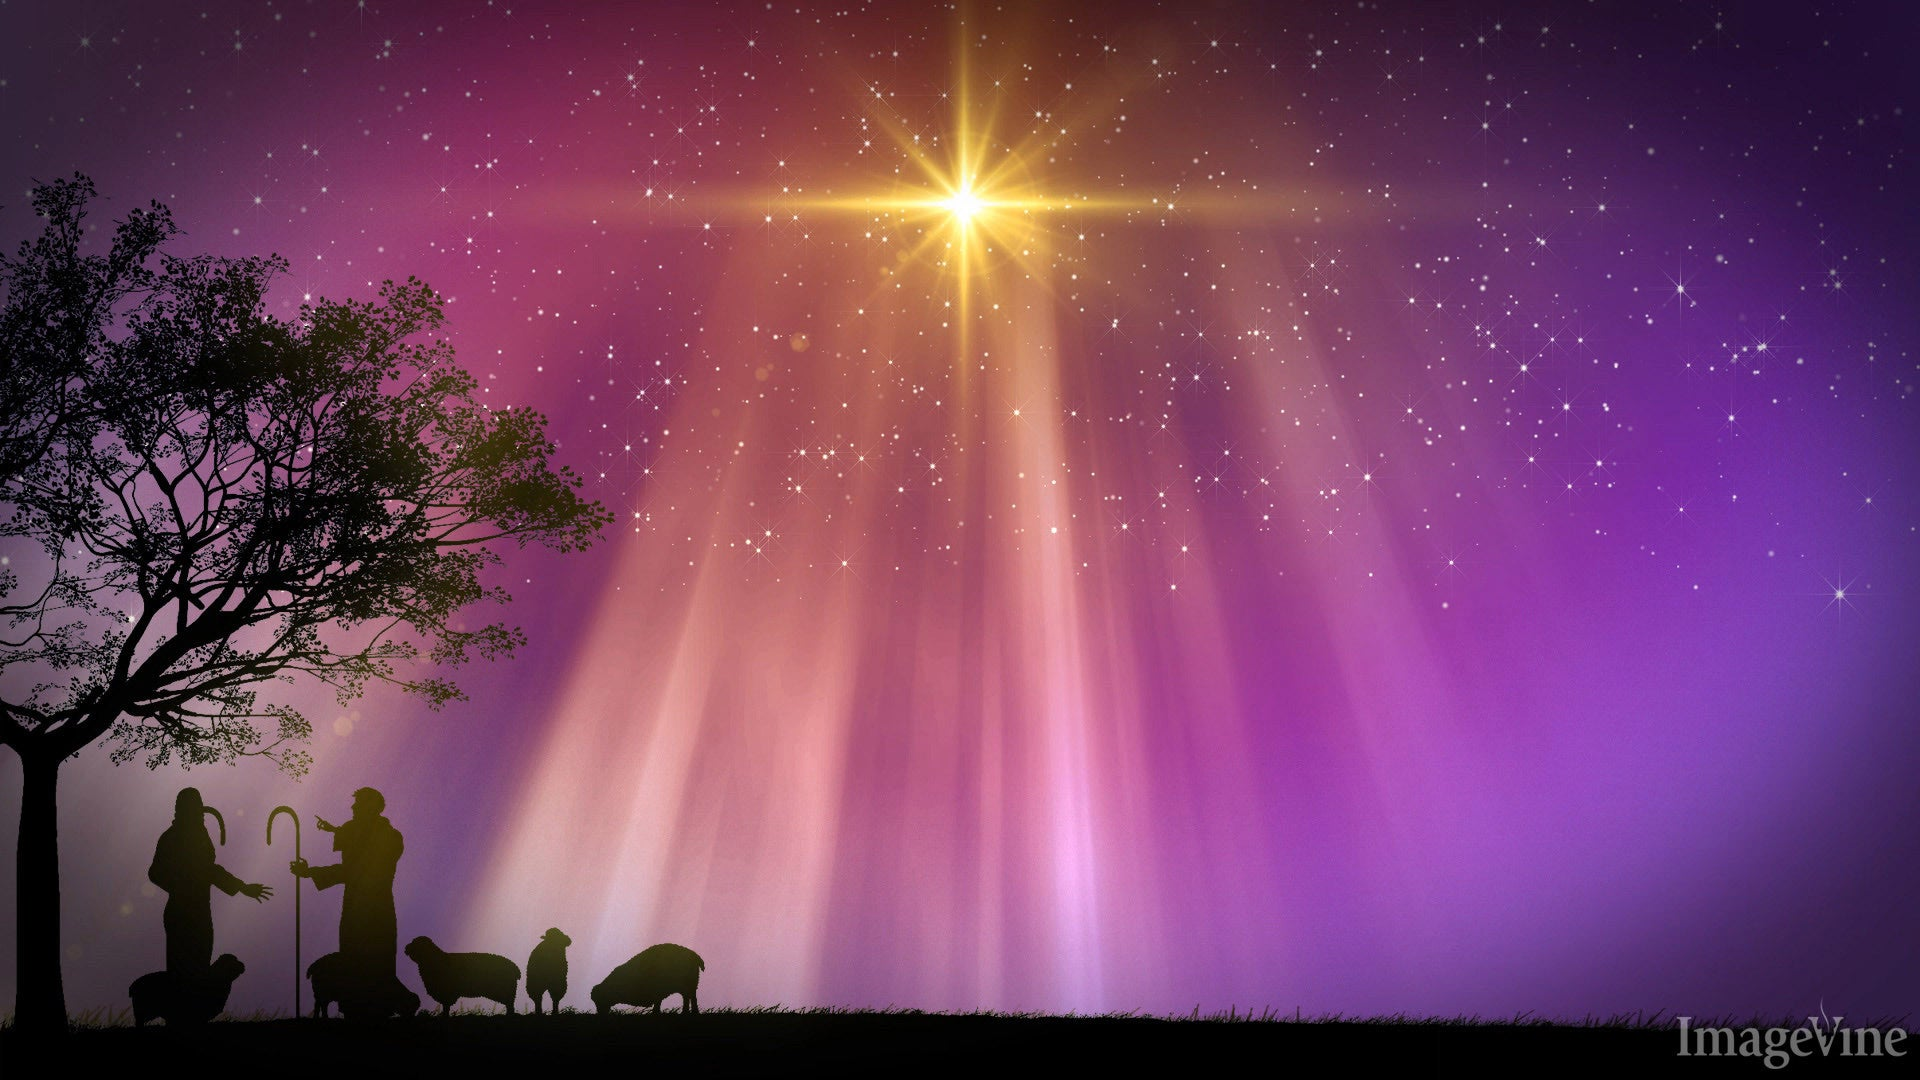 Christian christmas backgrounds images and mini movies imagevine christian christmas powerpoint backgrounds shepherds nativity star appears toneelgroepblik Gallery